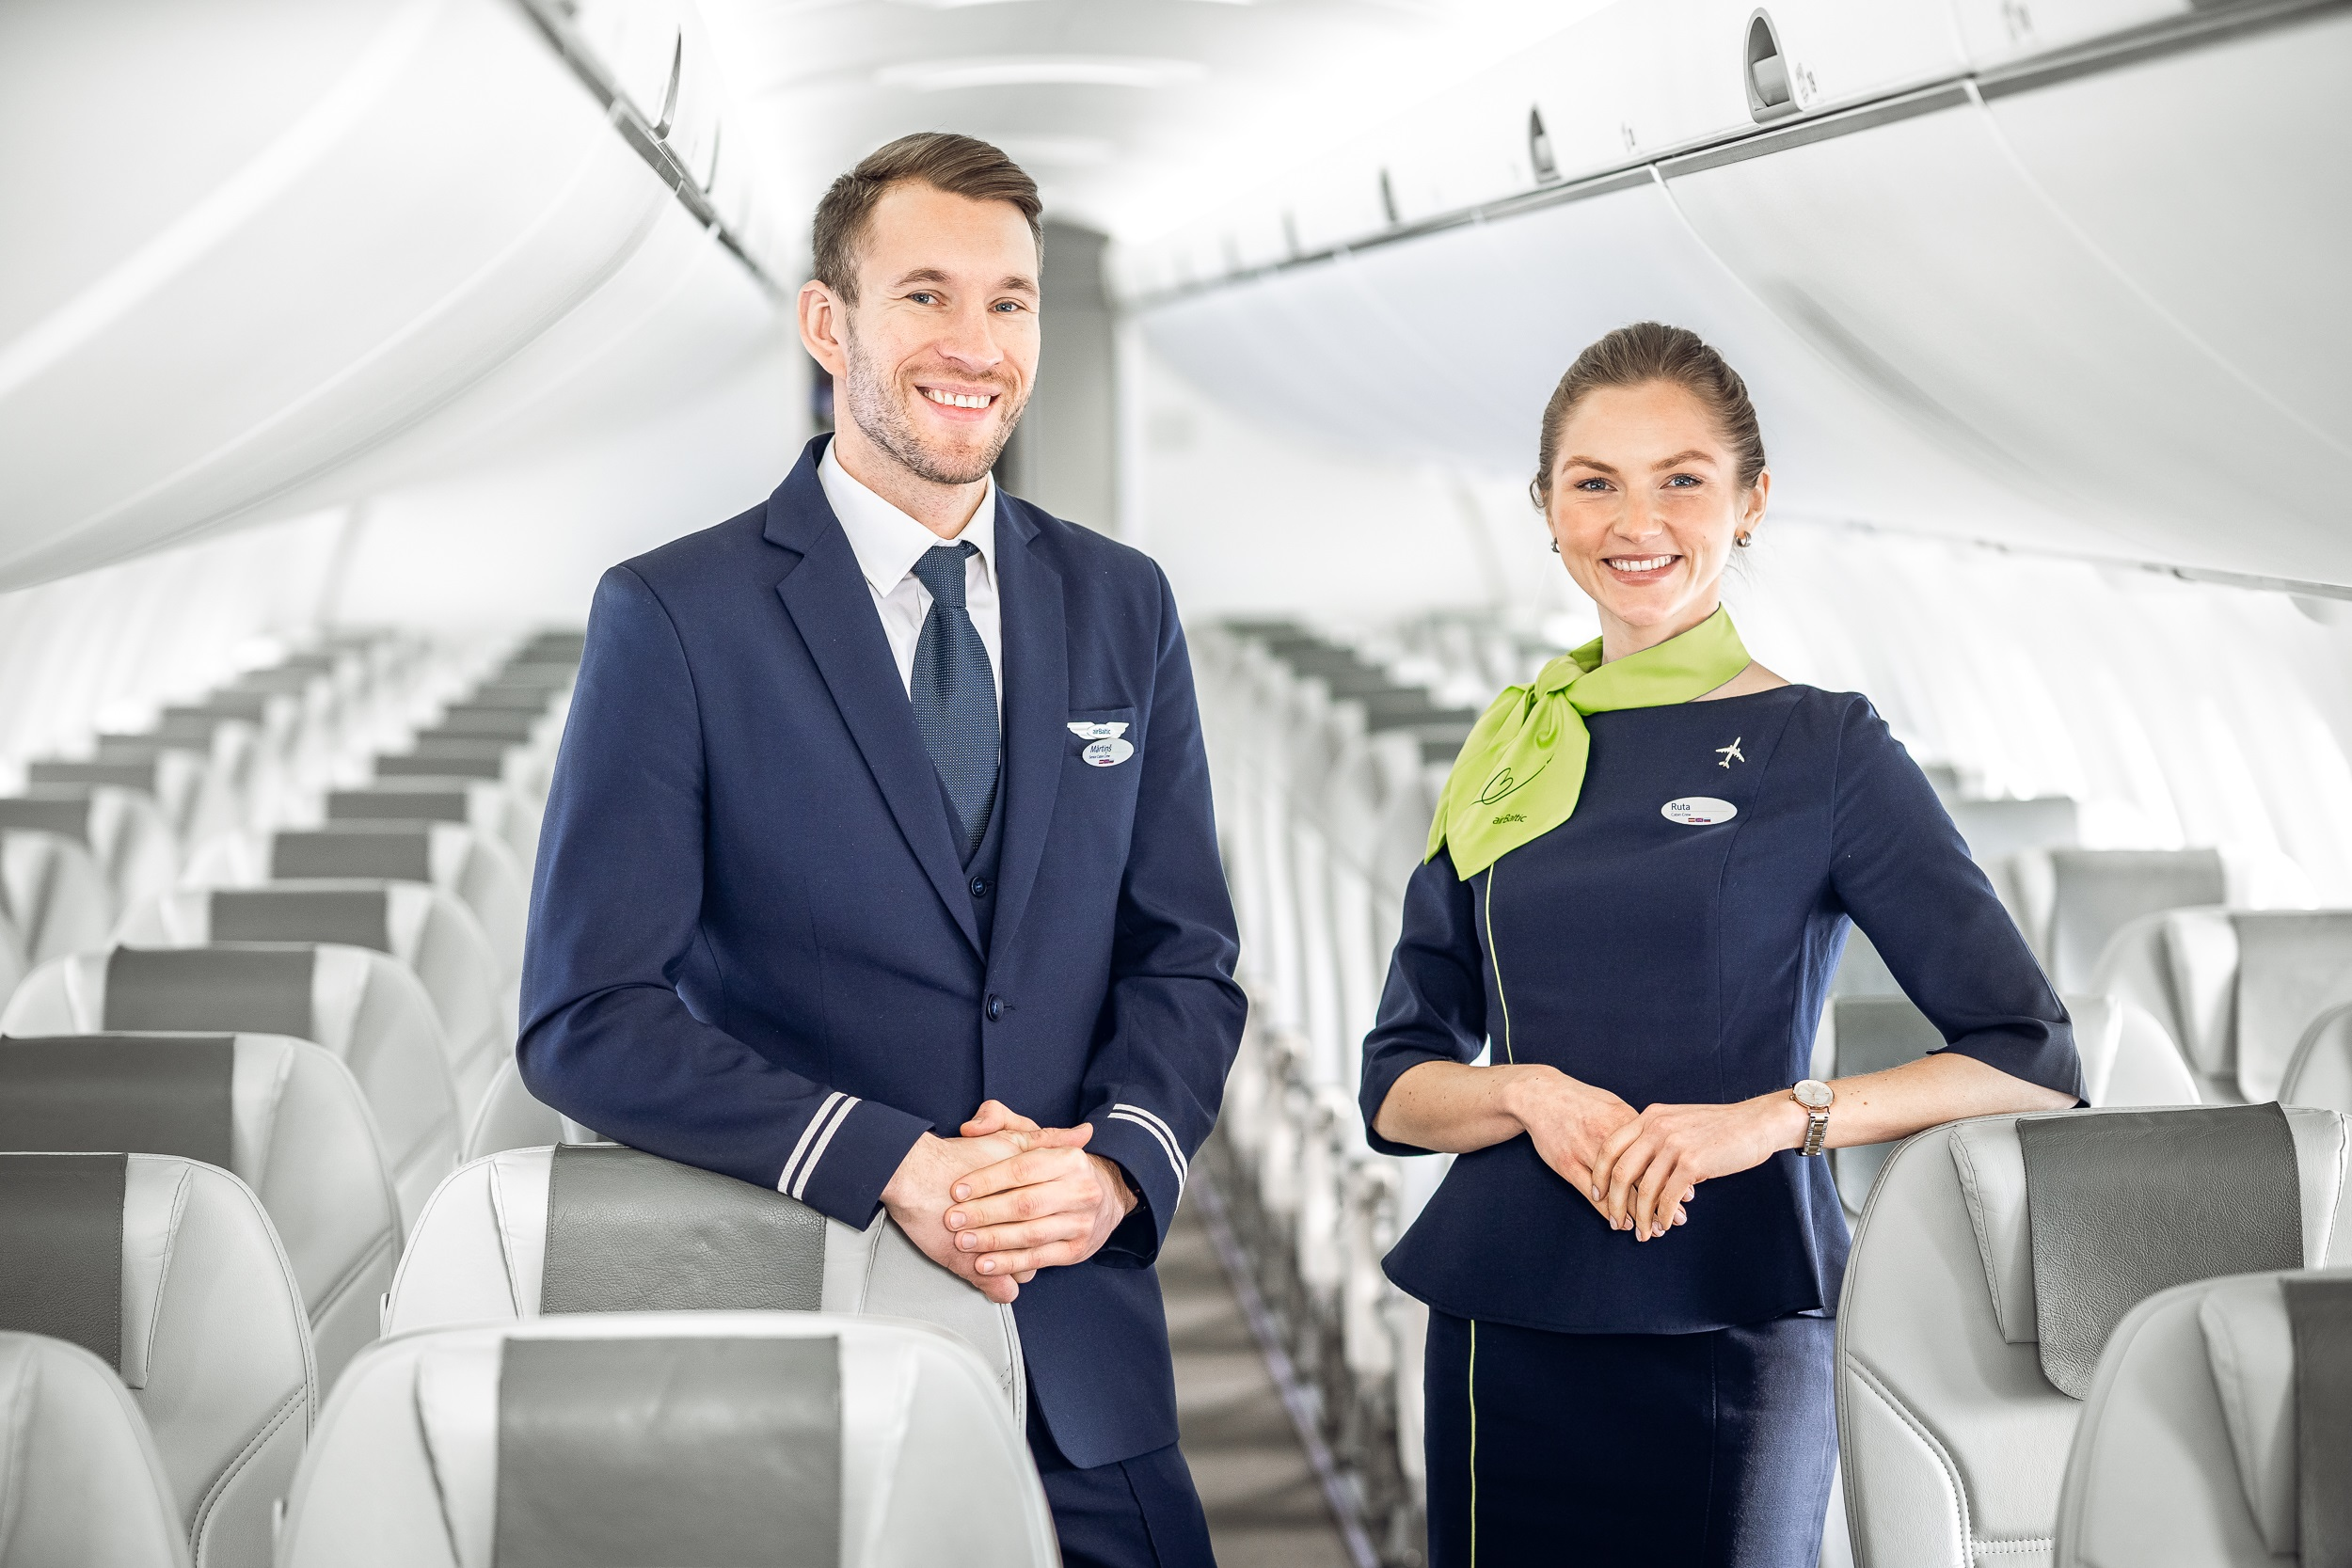 cabin crew 2 C2c is the corporate & private aviation service provider offering vip cabin crew training courses in dubai, uae to individual customer & corporate clients.